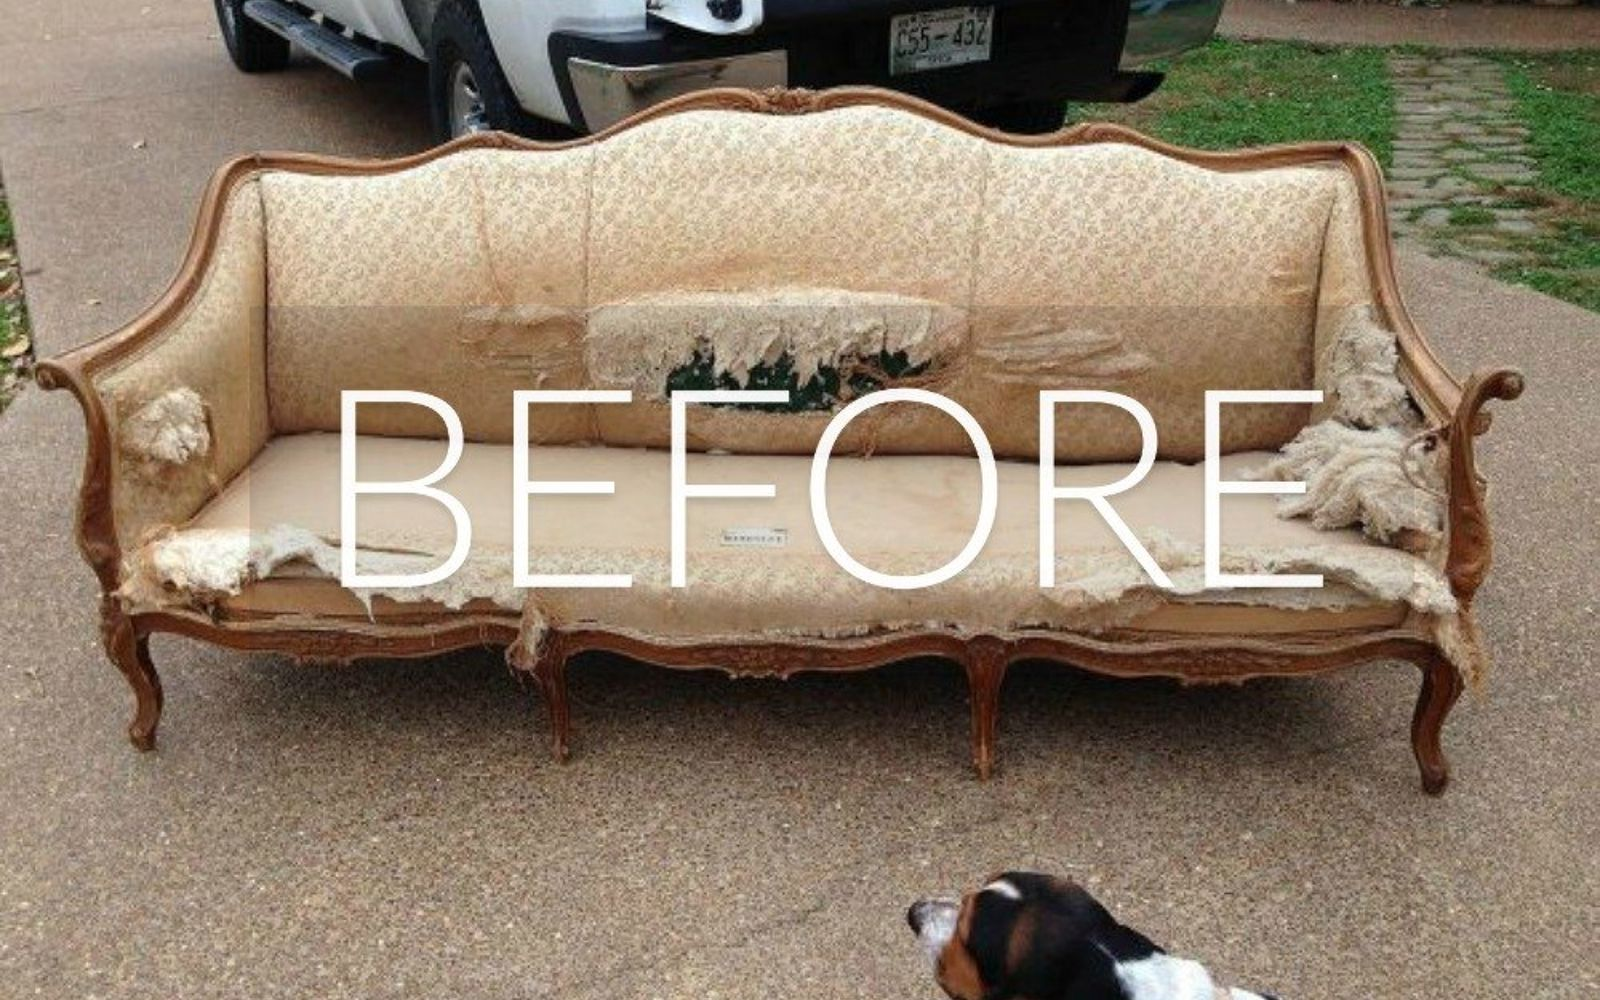 s hide your couch s wear and tear with these 9 ingenious ideas, painted furniture, Before Dumpster Derelict